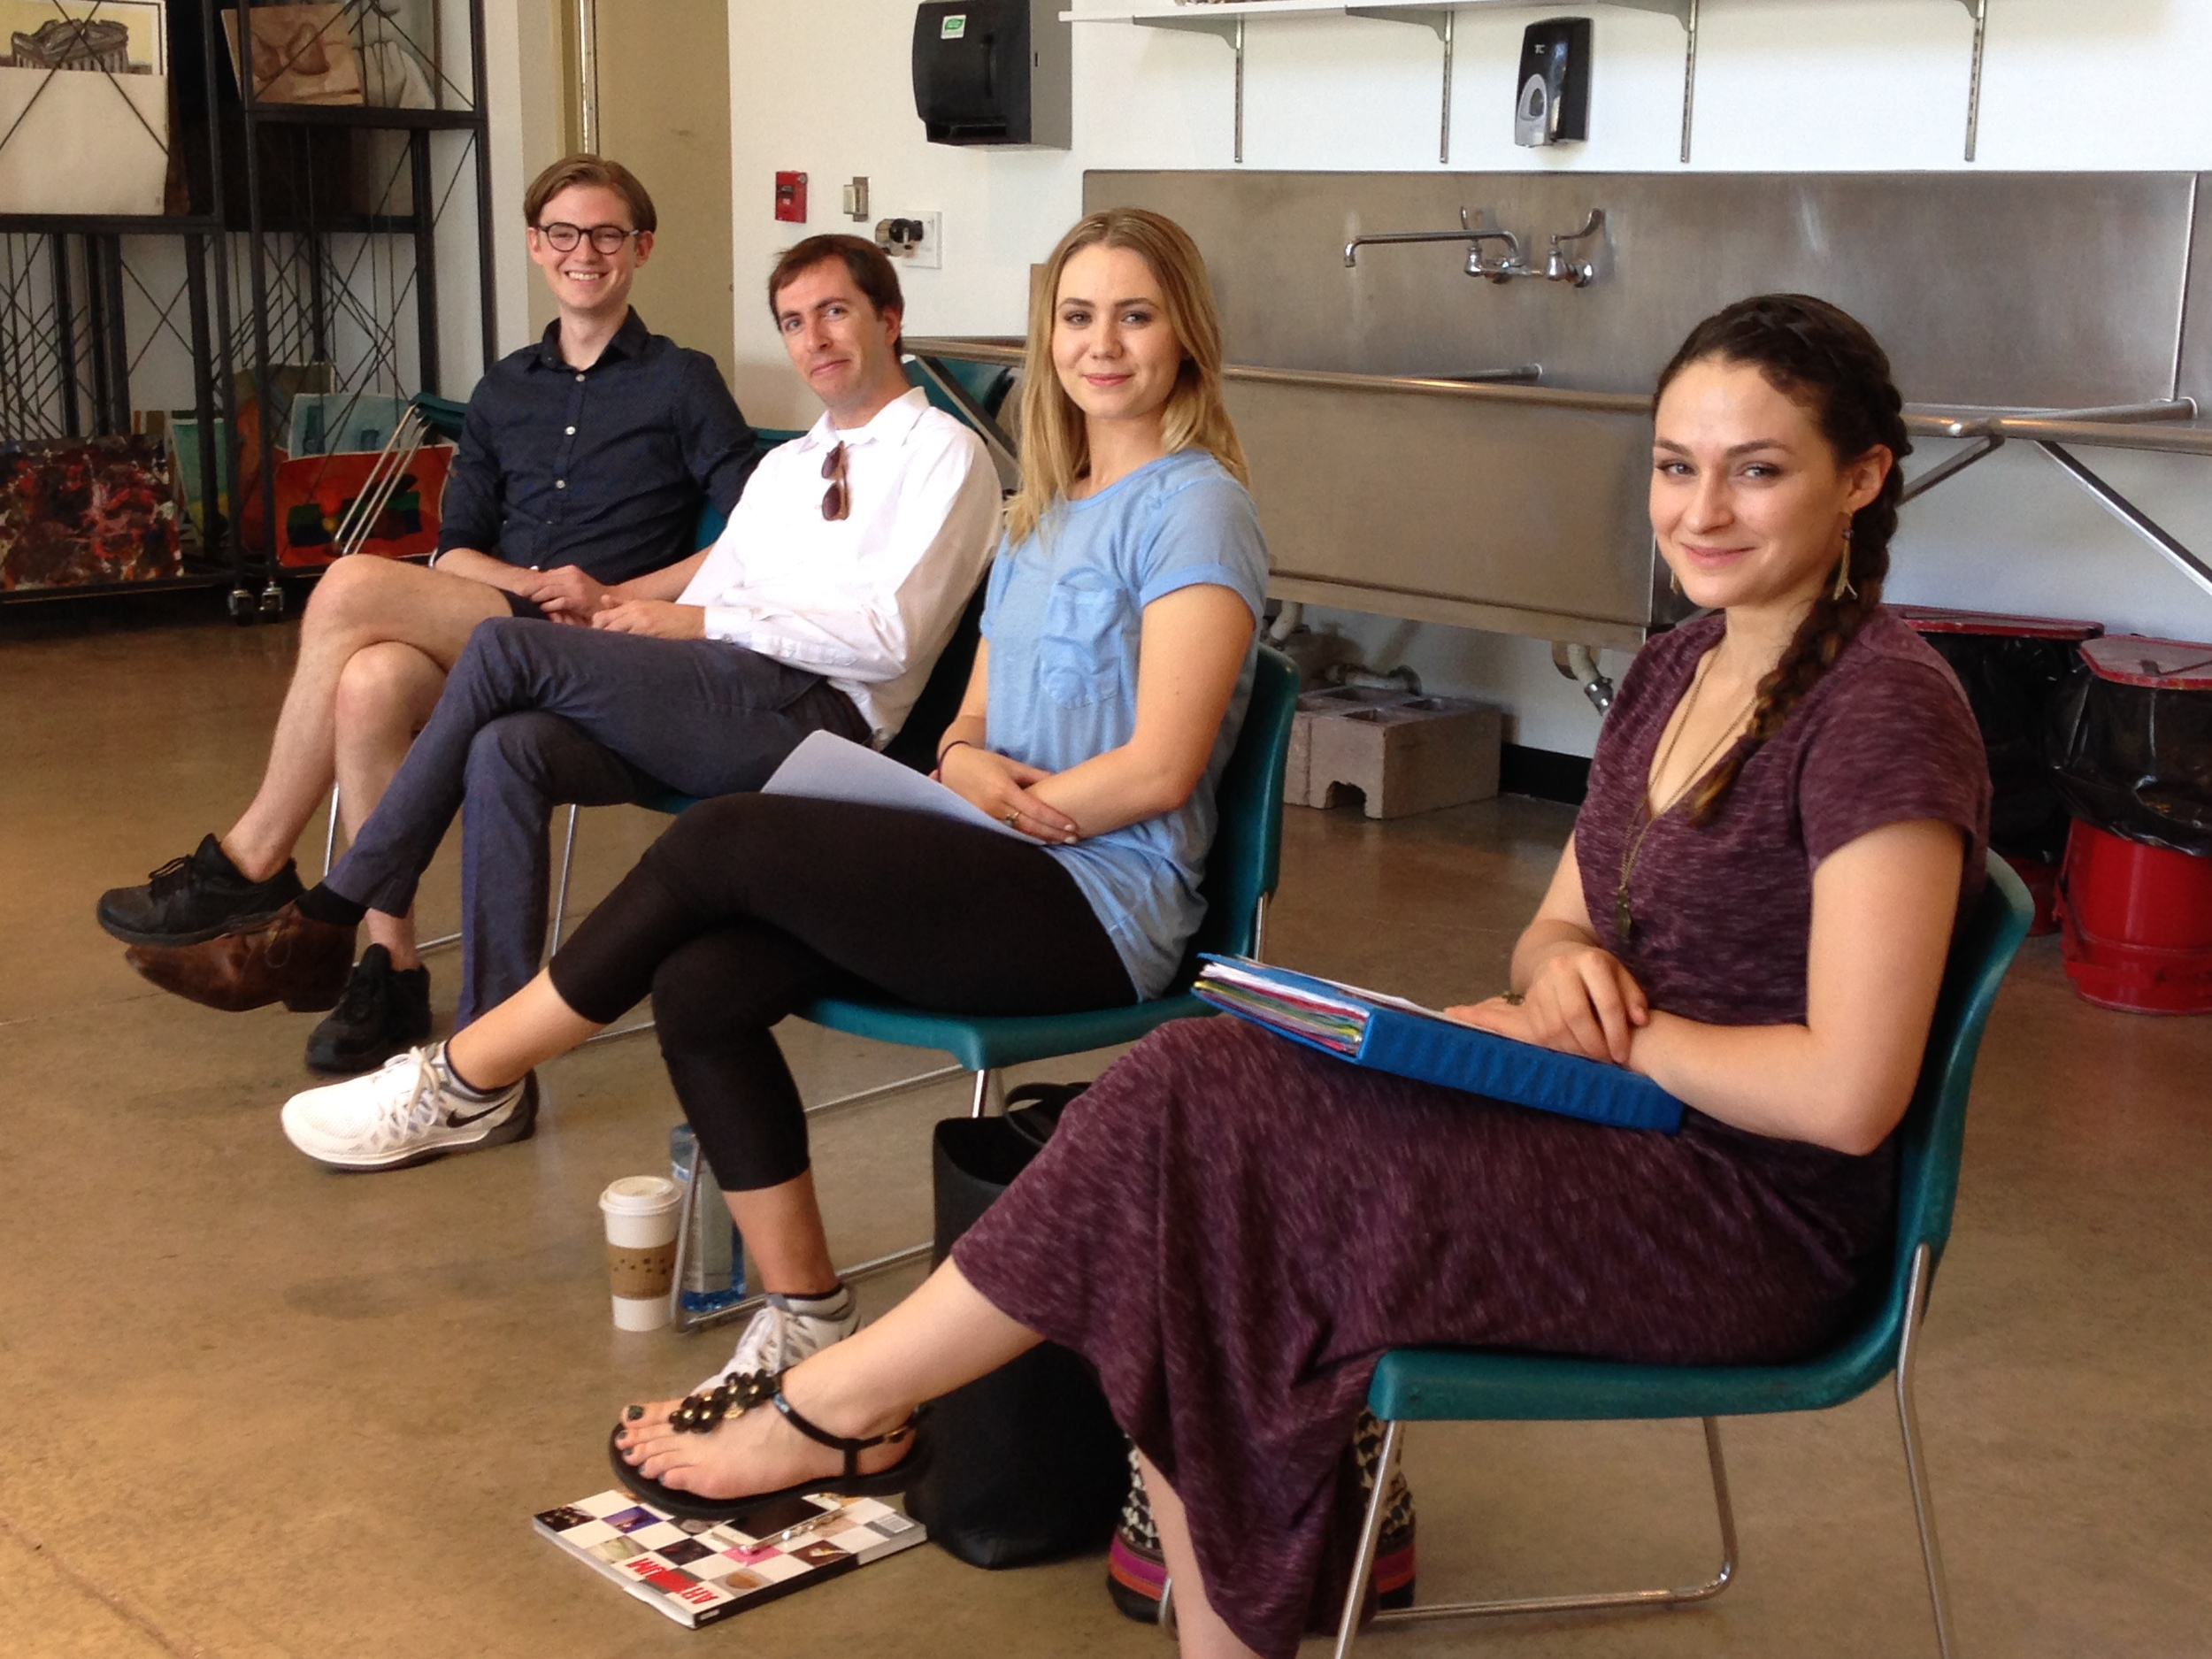 PVCC alumni Collin Pressler and Eric Heimbecker visit Katlynn McNab, Heidi Klotz and PVCC art students in the painting and drawing studio to discuss their work with curating and social engaged projects.